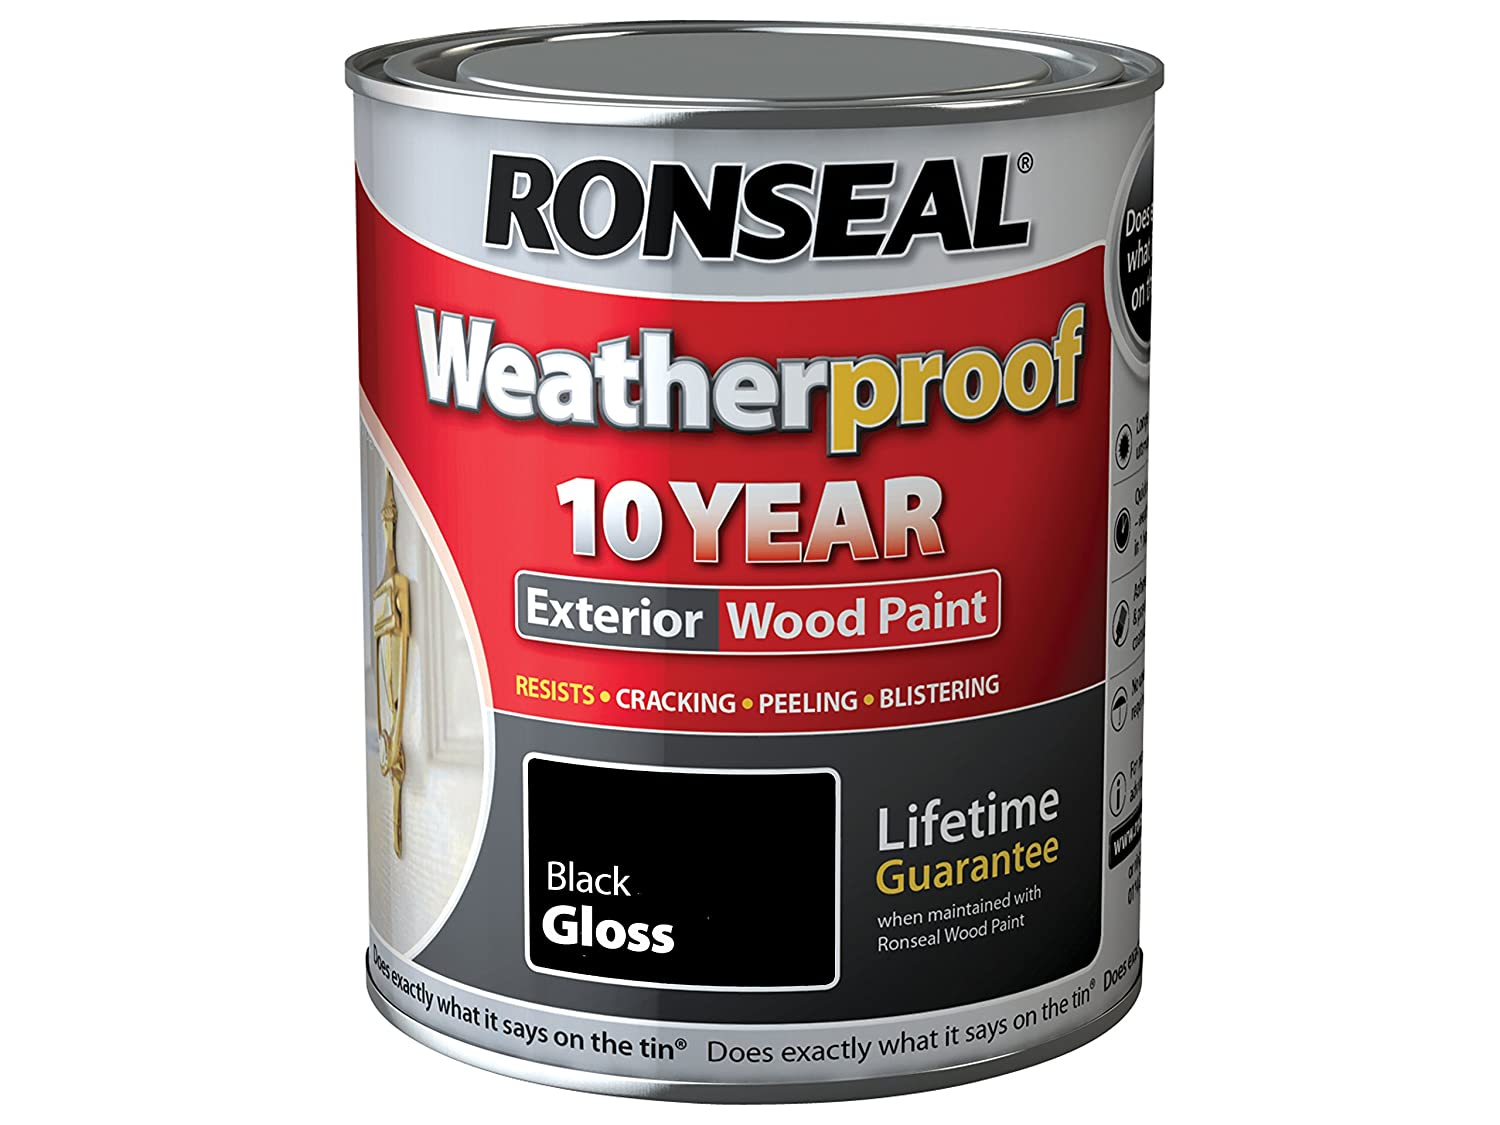 Ronseal RSLWPBLK25L Weatherproof 10 Year Exterior Wood Paint Black Gloss 2.5 Litre Toolbank